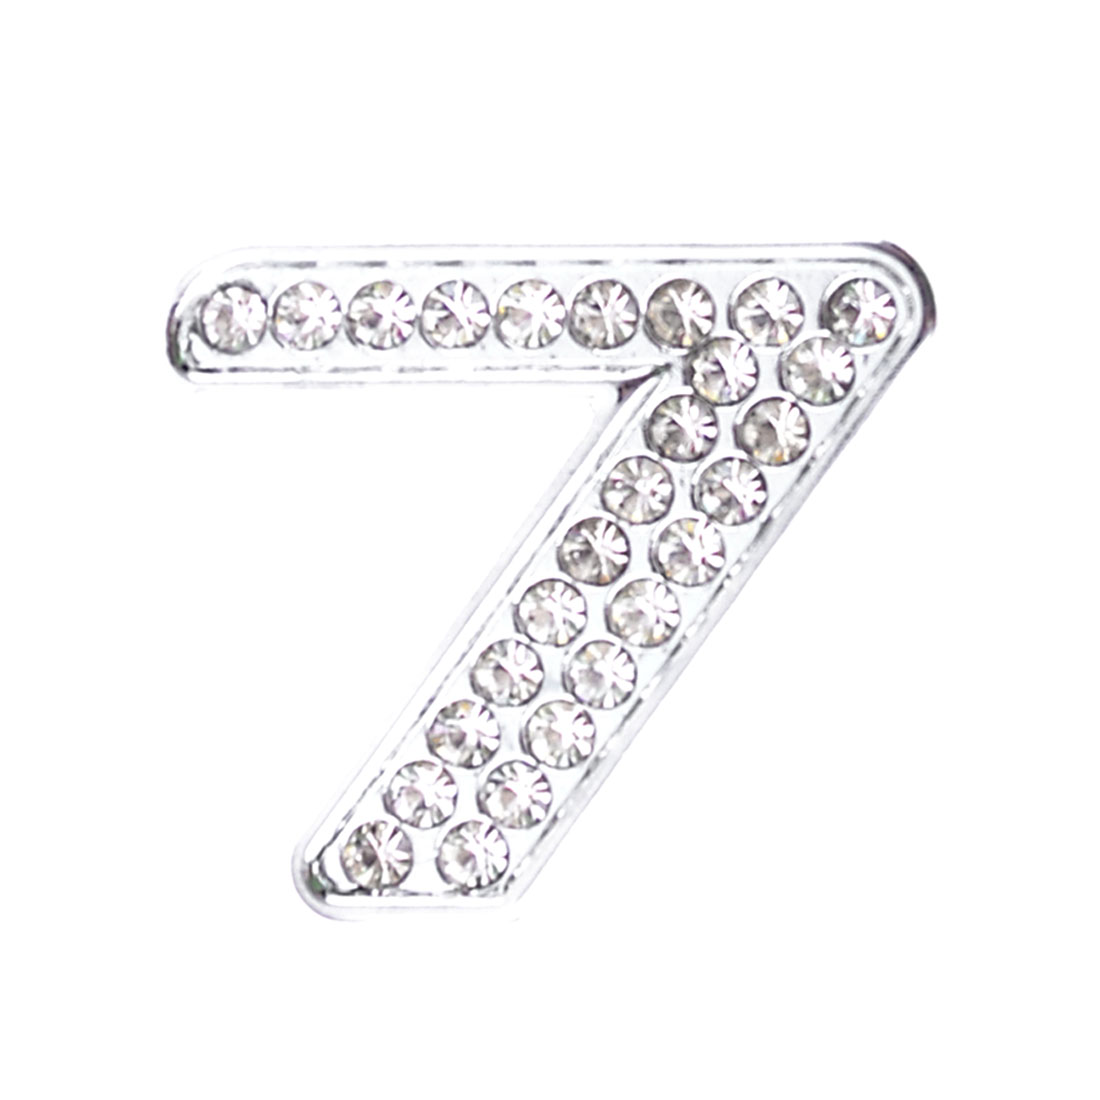 Silver Tone Metal Rhinestone Implant Number 7 Shaped Car Badge Sticker